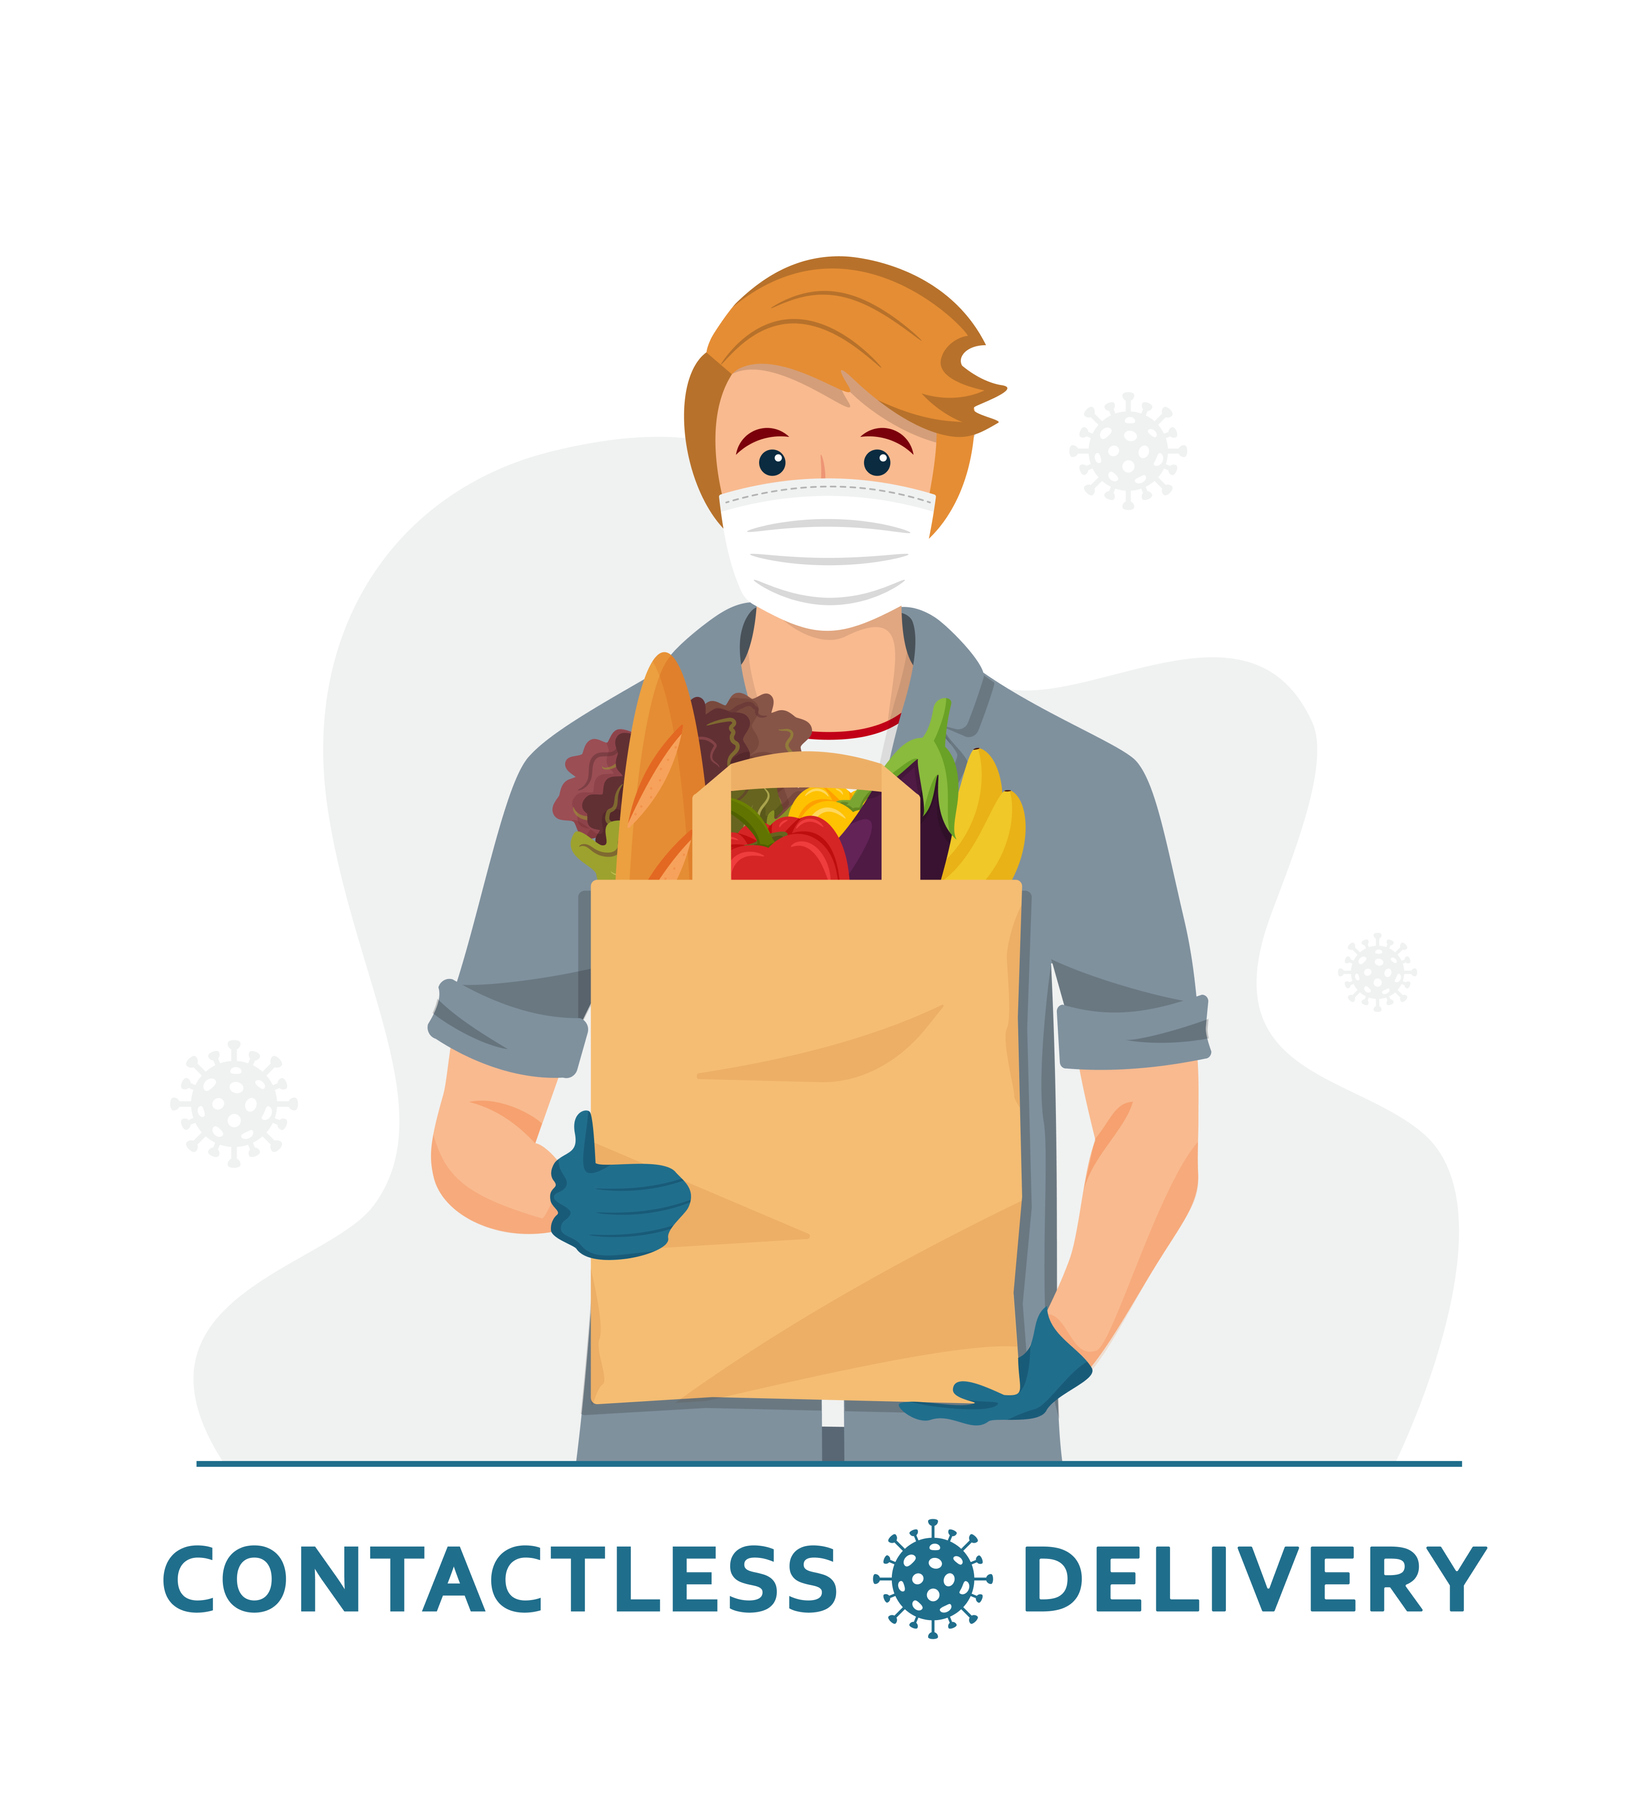 Contactless delivery. Delivery man / courier in a medical mask and gloves with paper bag.